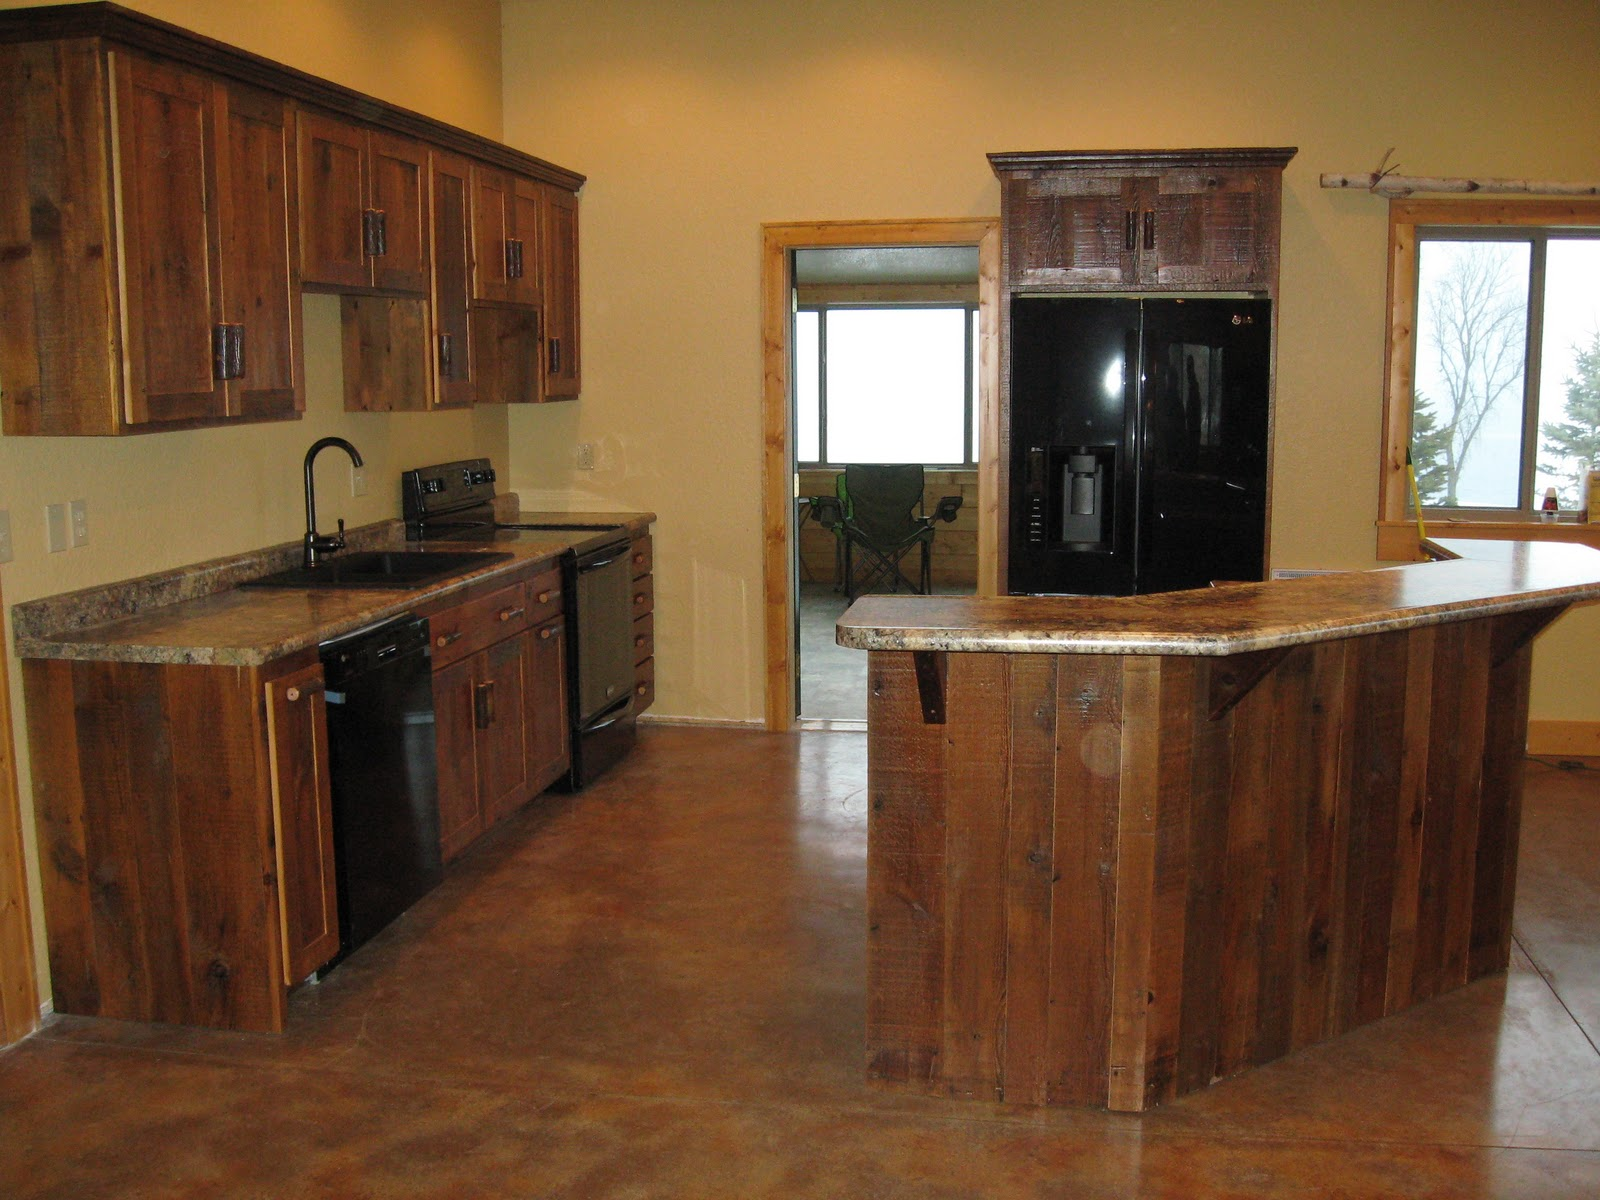 Rustic Kitchen Cabinets Reclaimed Wood Kitchen Cabinets from